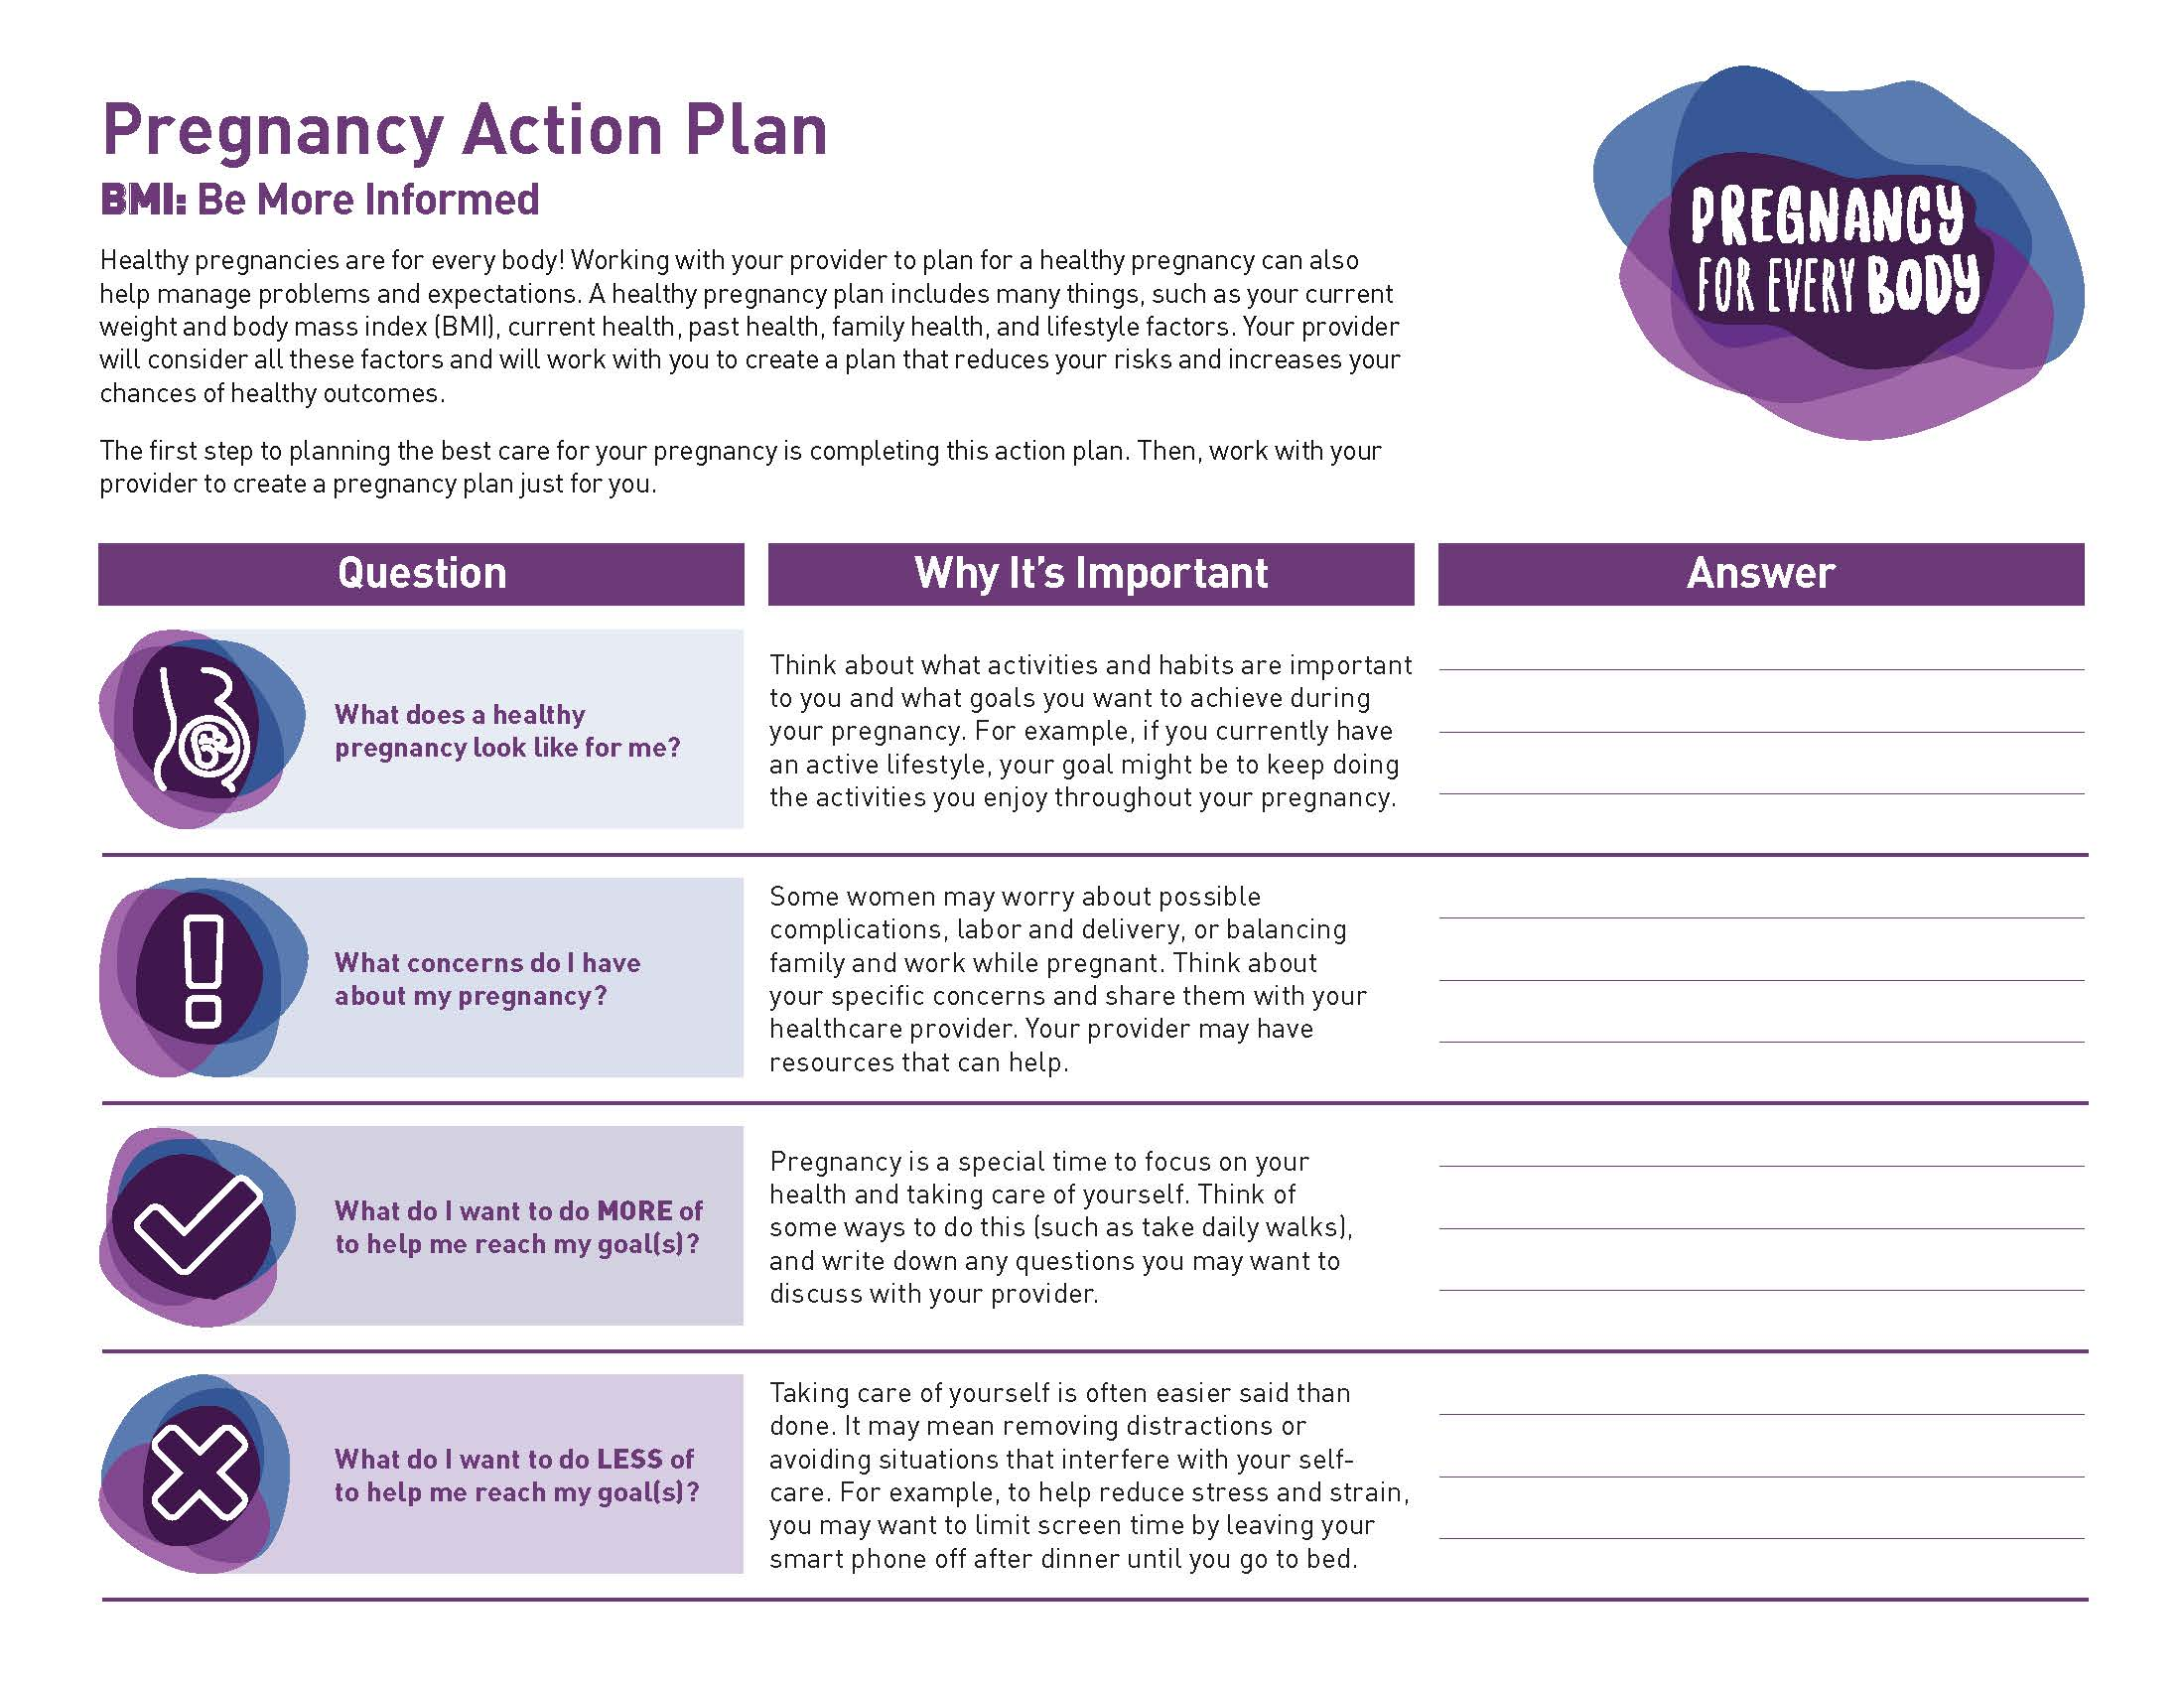 Image of the Pregnancy for Every Body Factsheet: Pregnancy Action Plan.